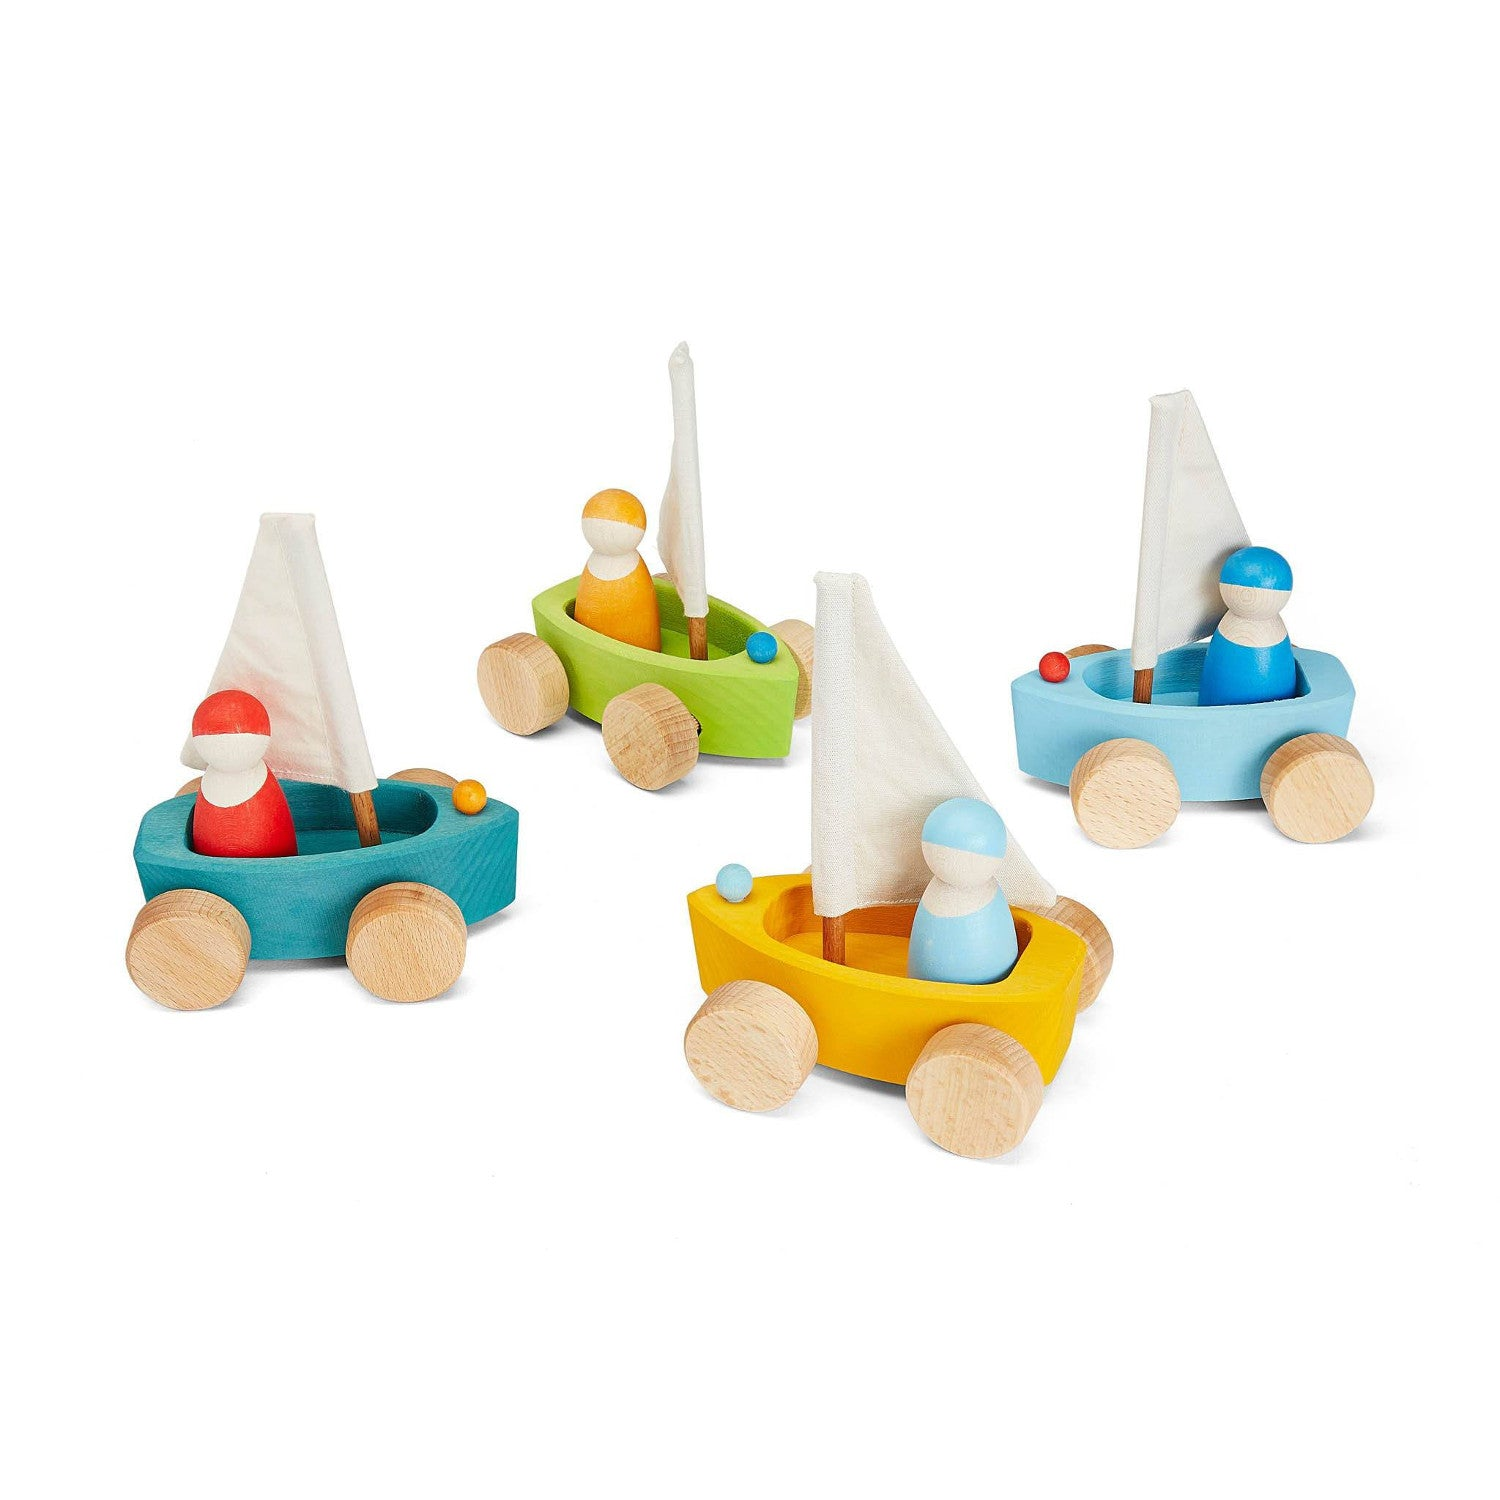 Griimms wooden toy yacht with wheels sail and little friend